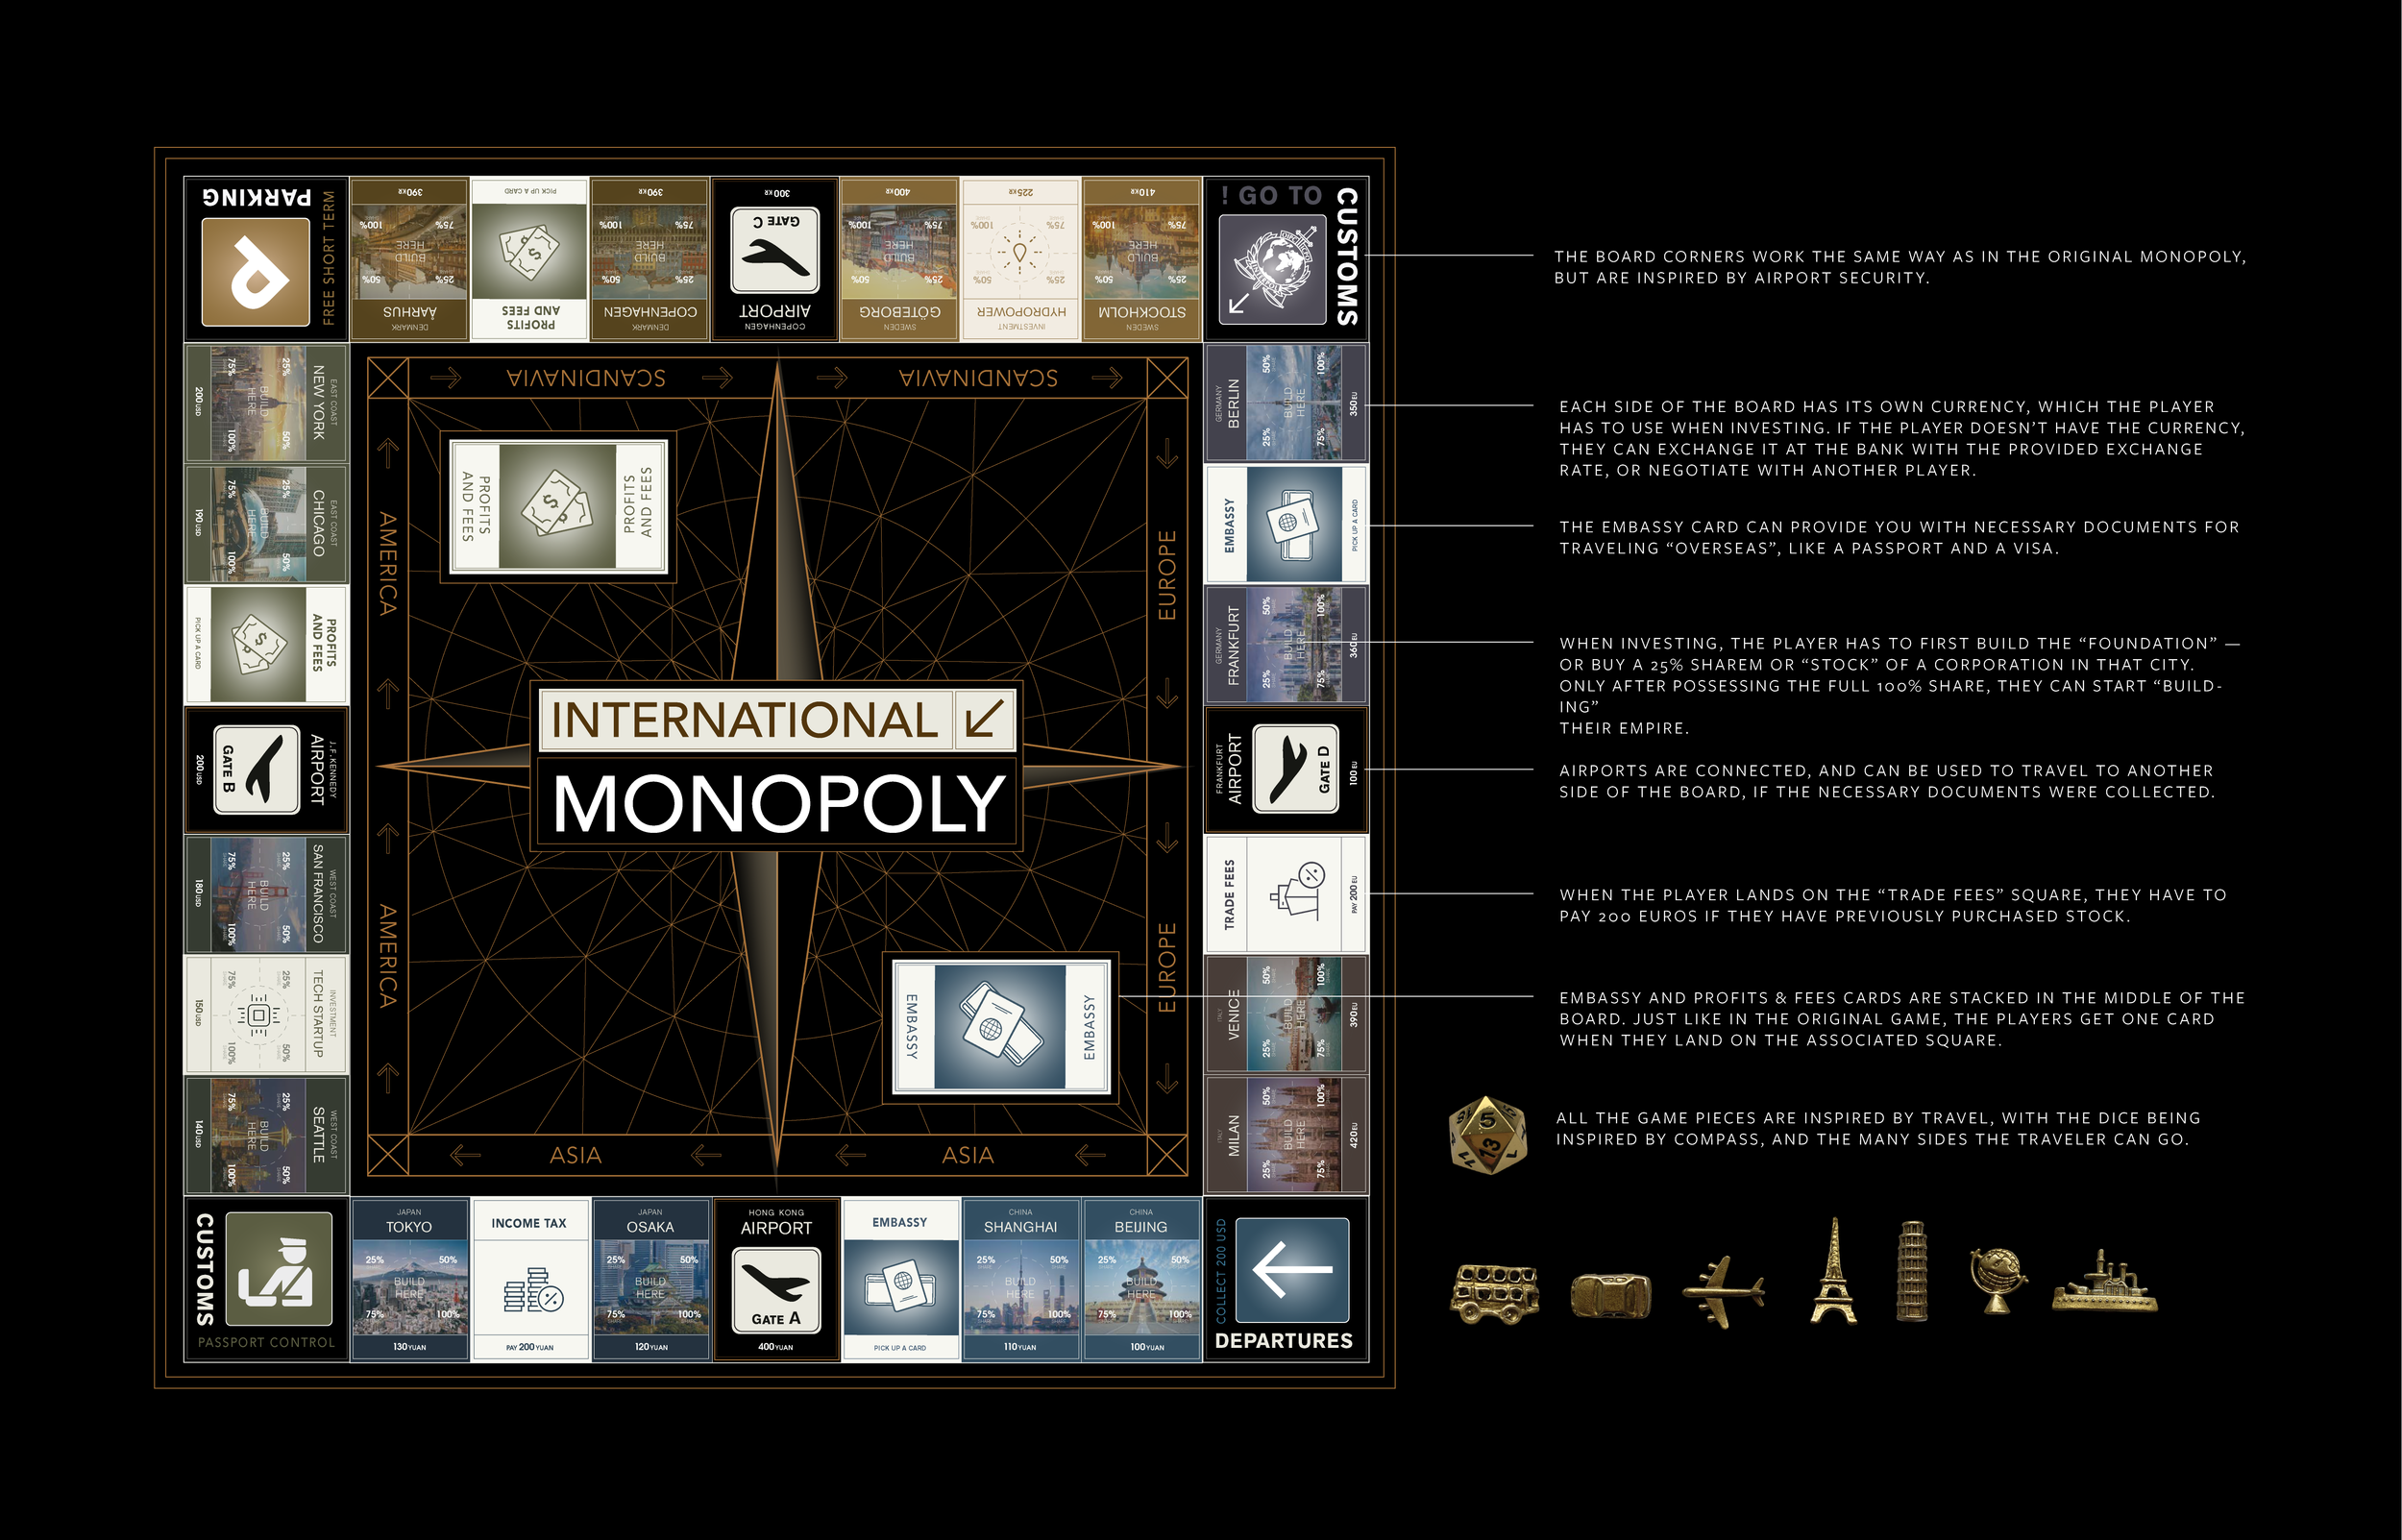 monopoly rules-20.png